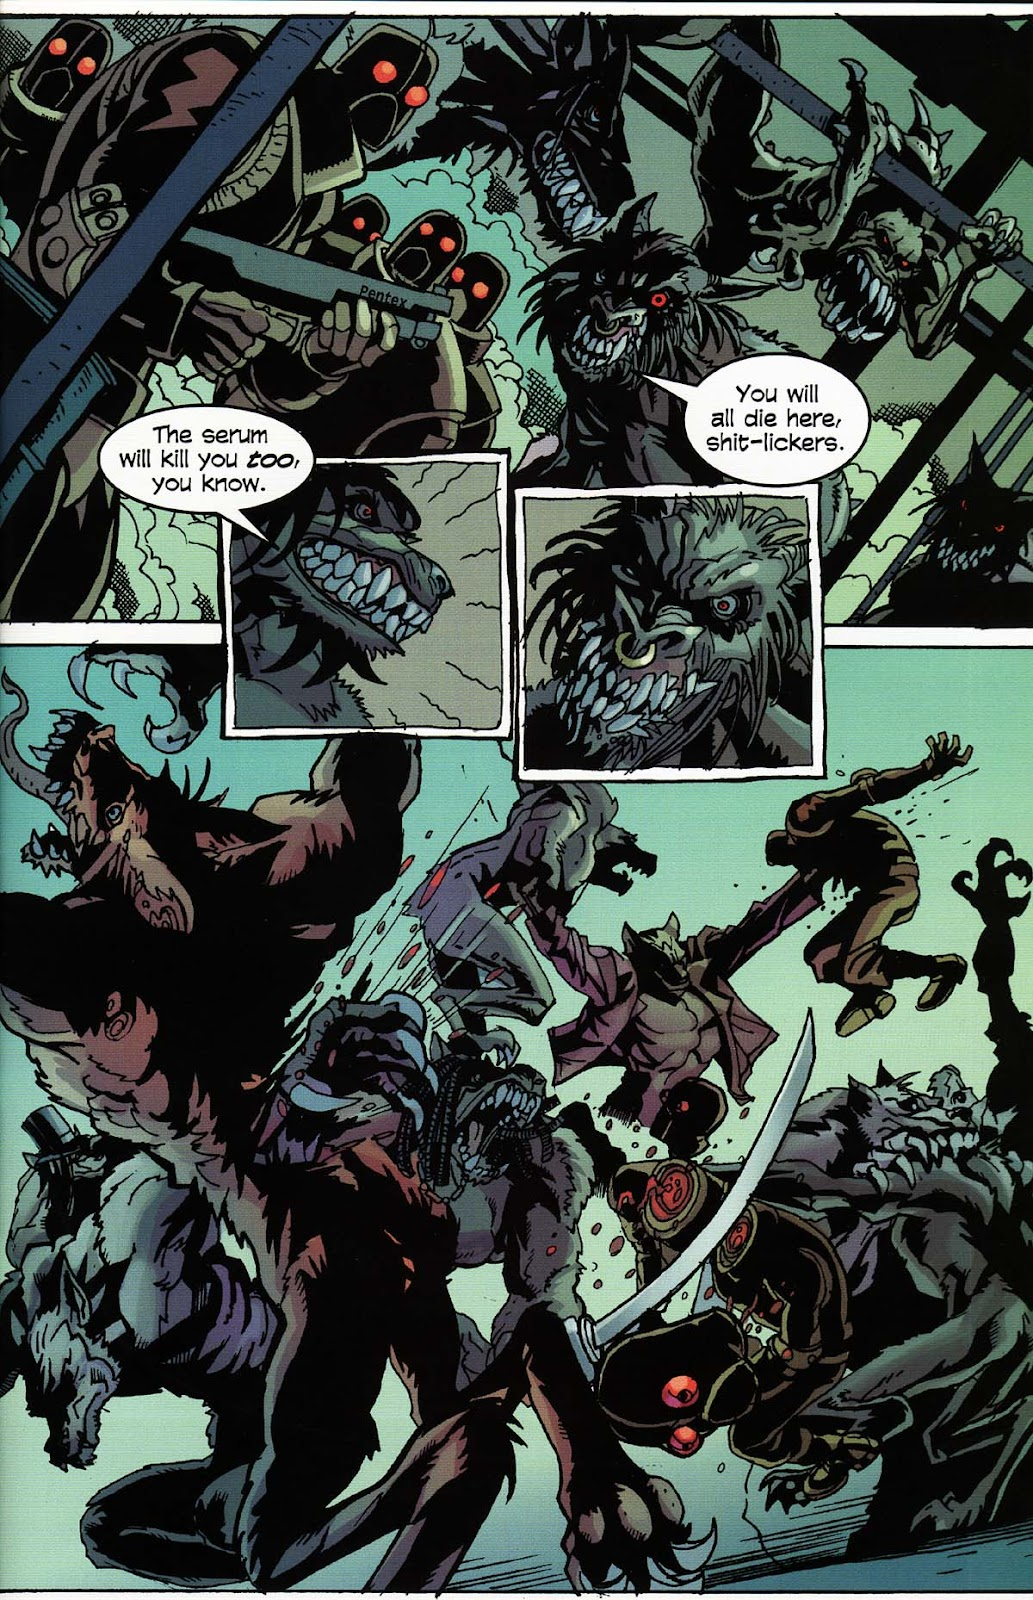 Read online Werewolf the Apocalypse comic -  Issue # Bone Gnawers - 37